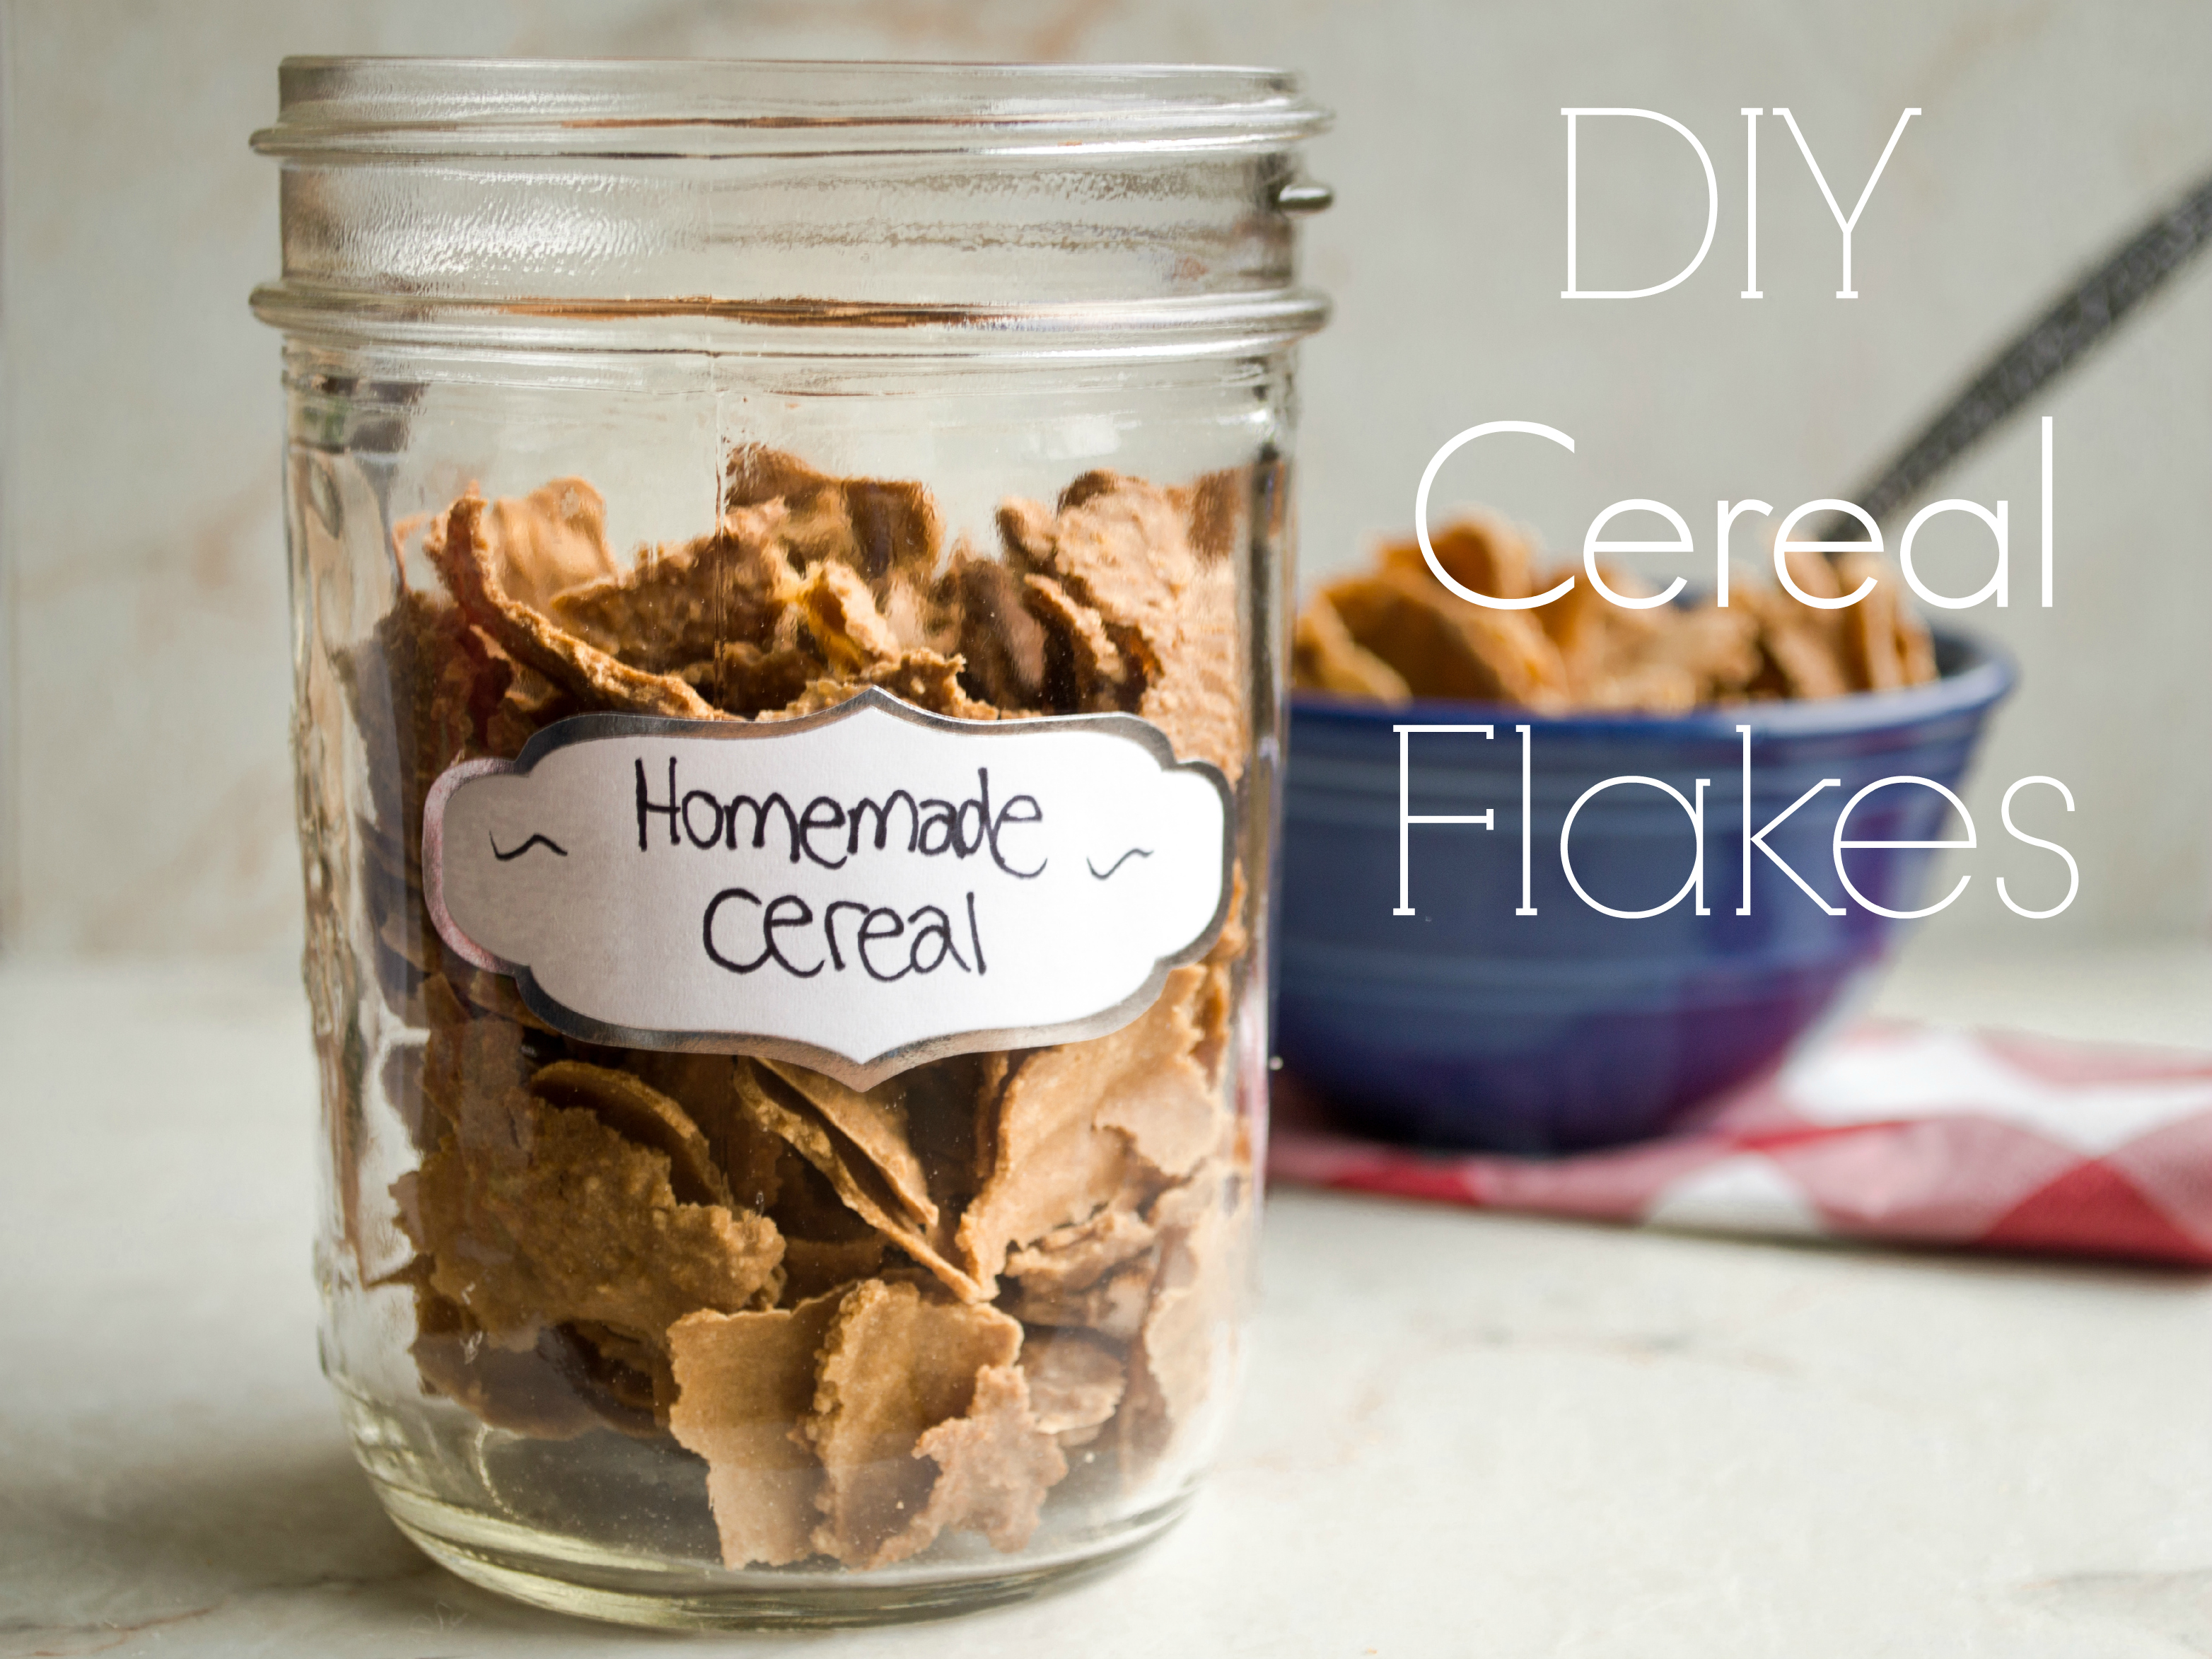 Homemade oatmeal flake cereal trader joes copycat a bite of becky have you ever tried making your own cereal at home leave a comment if you have an idea for a breakfast cereal i should try to diy ccuart Gallery